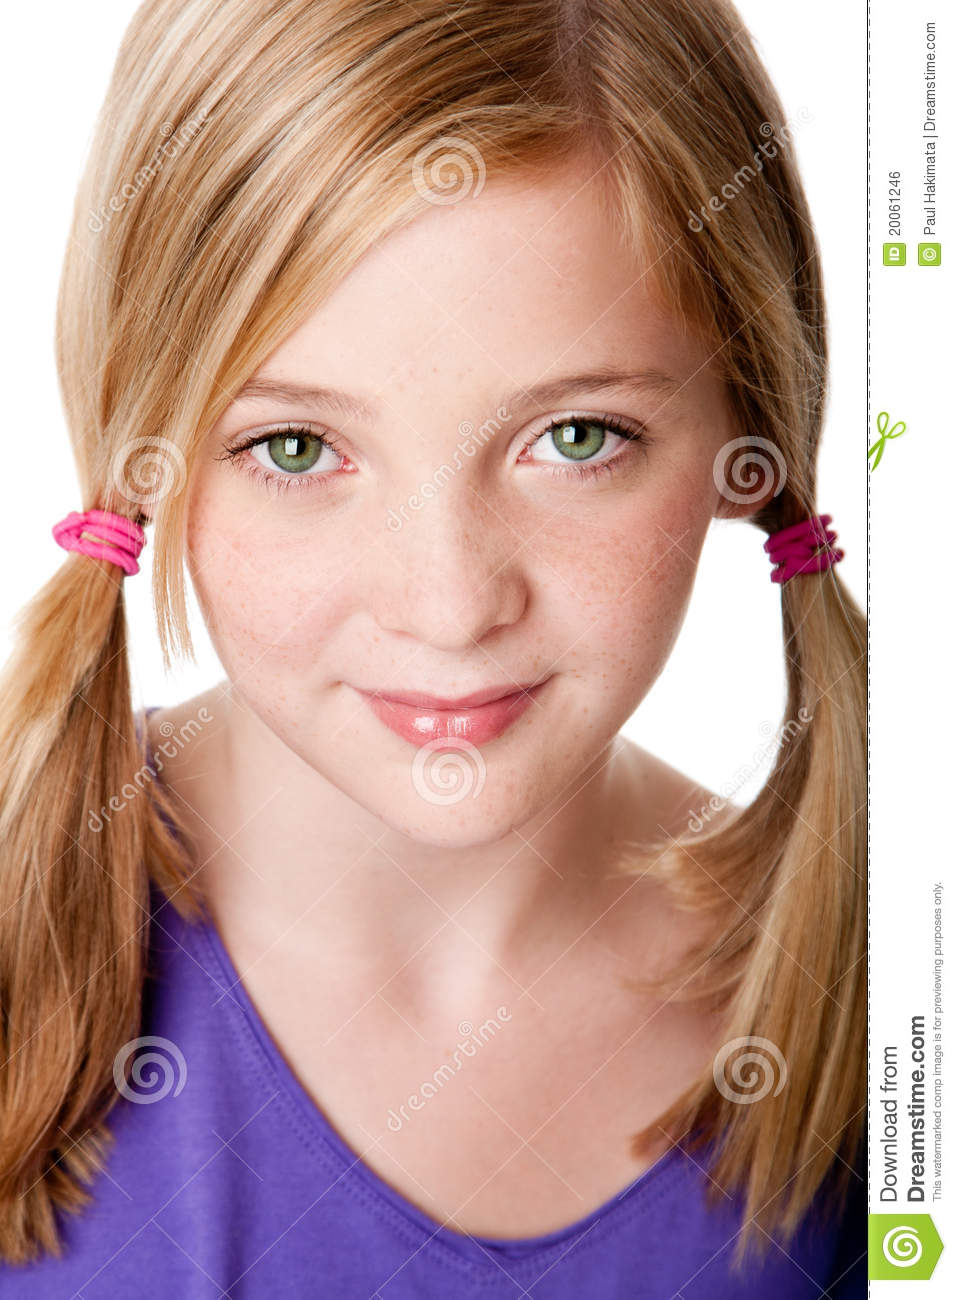 Beauty Face Of Teenager Girl Stock Photo - Image 20061246-8043